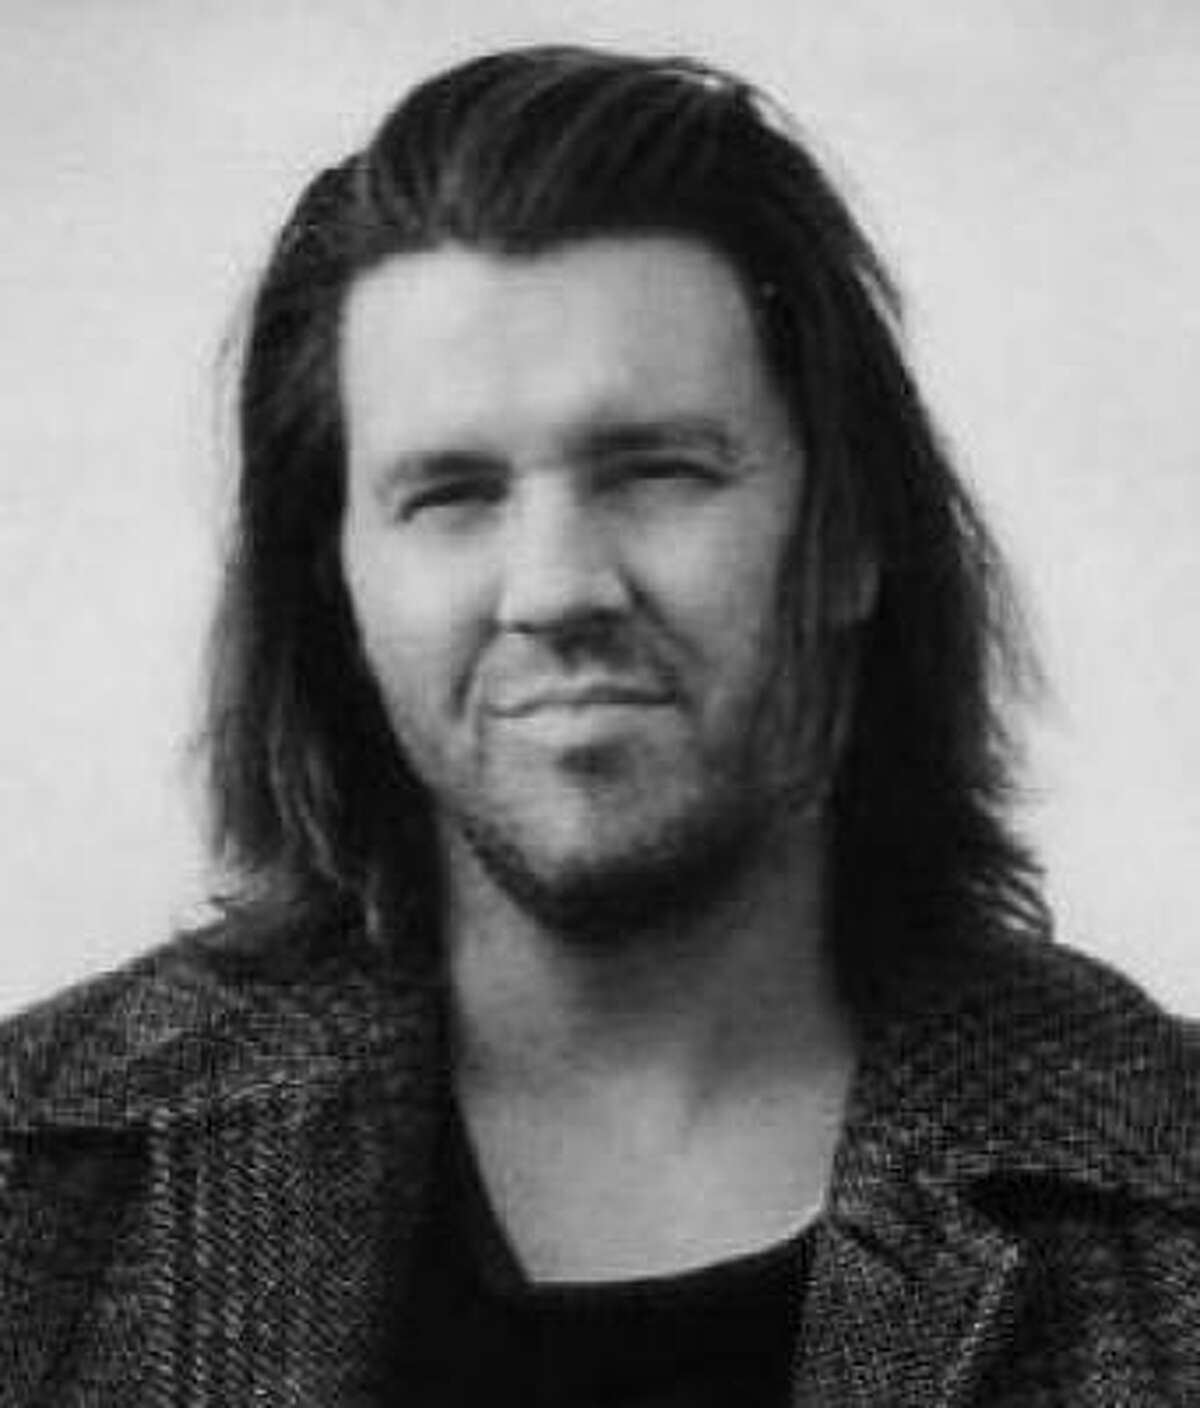 David Foster Wallace, shown in 2005, taught creative writing and English at Pomona College in California.